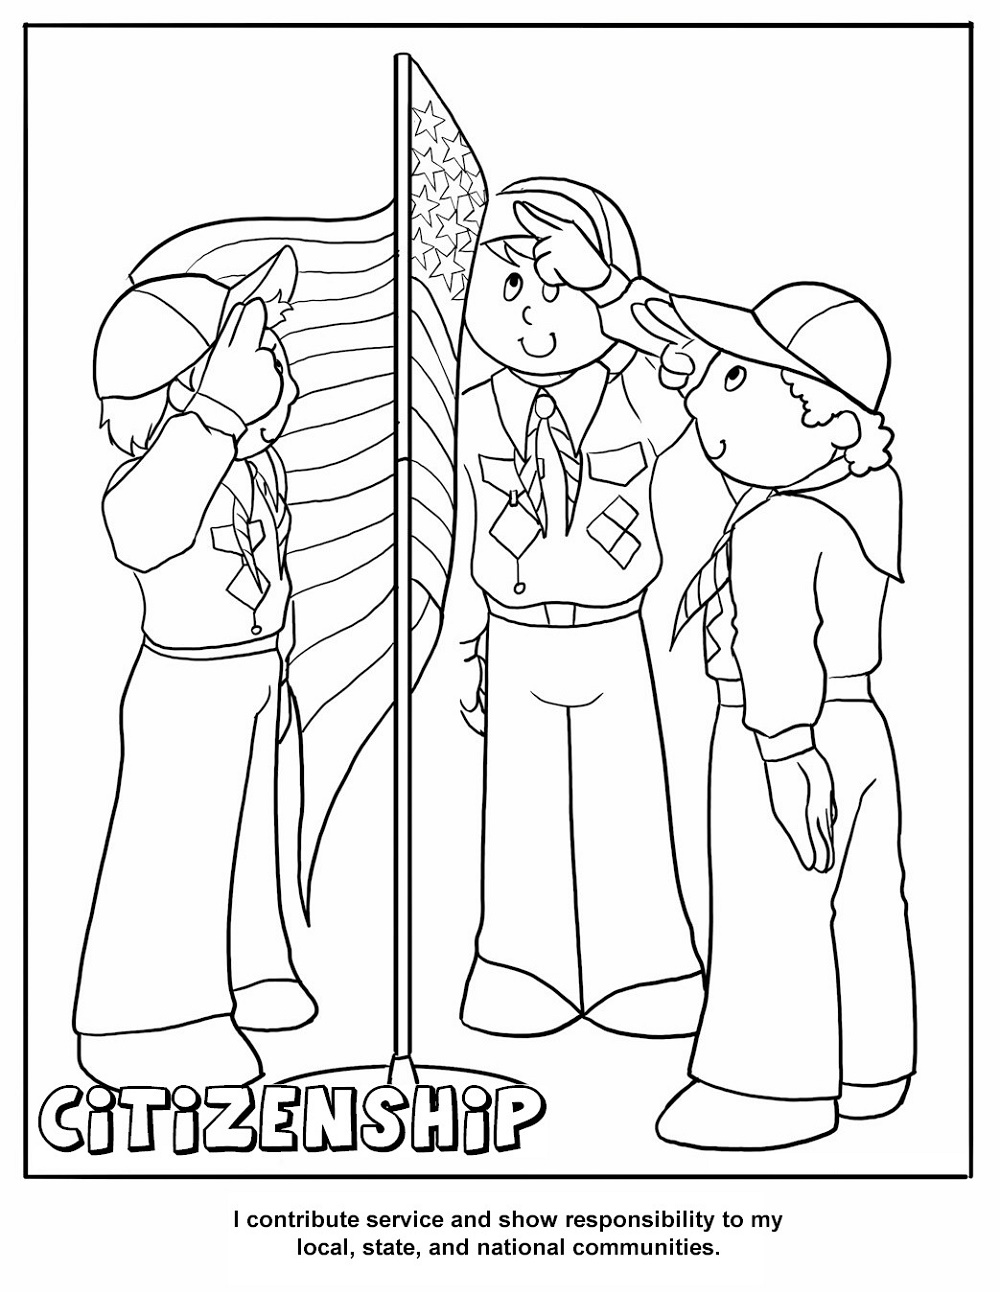 Cub Scout Coloring Pages Citizenship